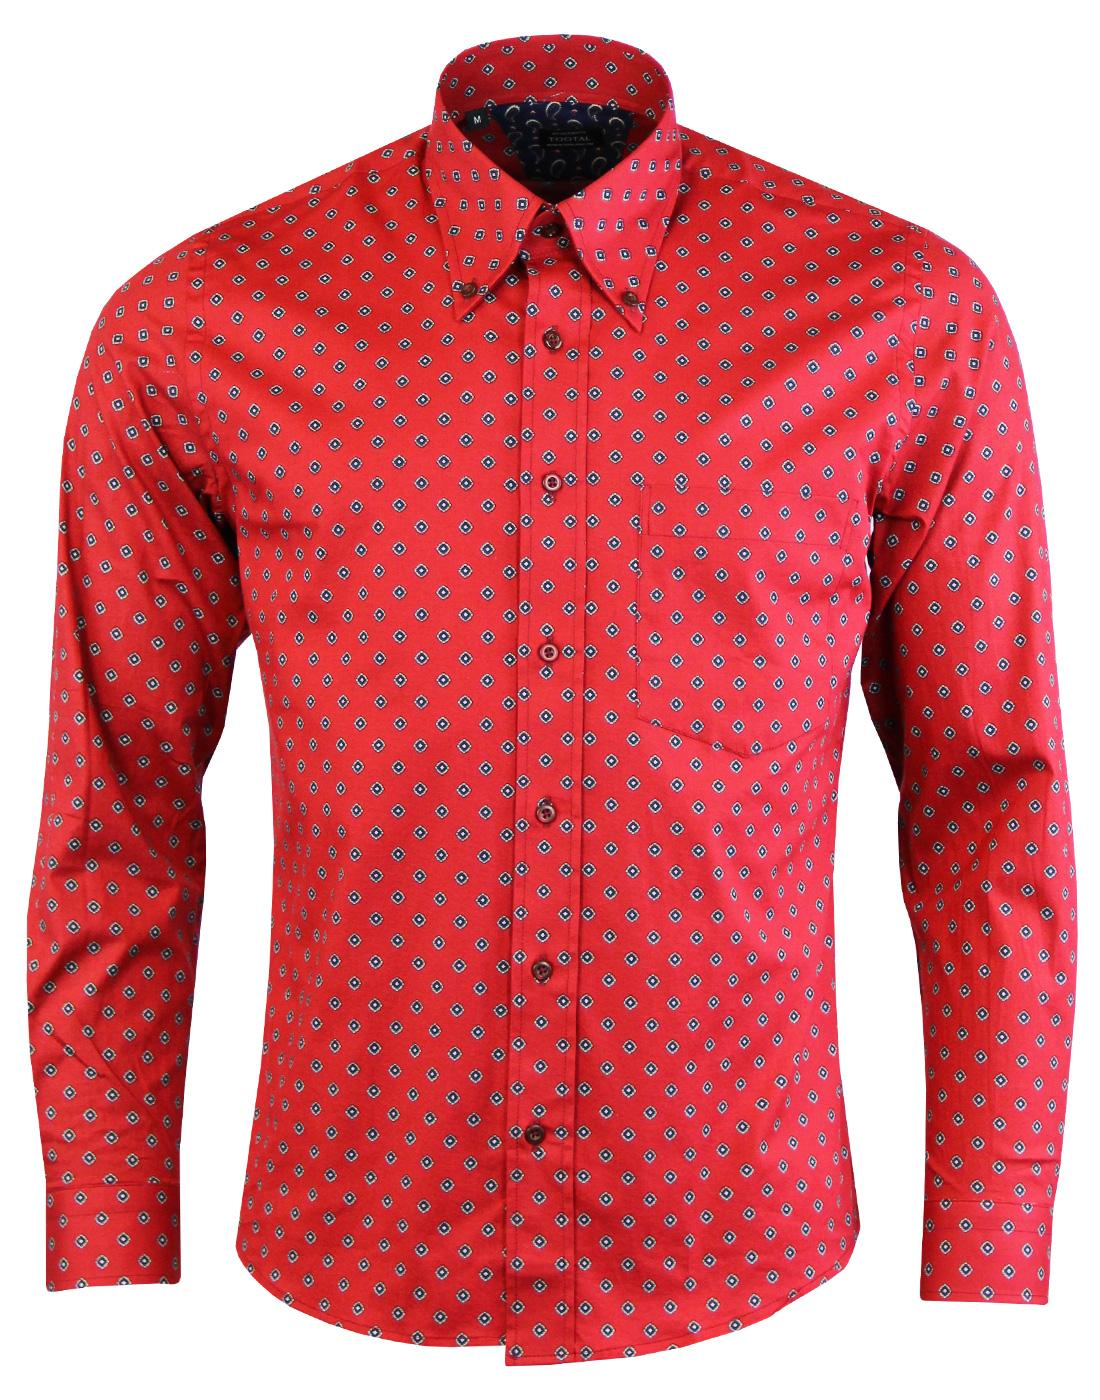 TOOTAL Retro Mod Geometric Print Button Down Shirt